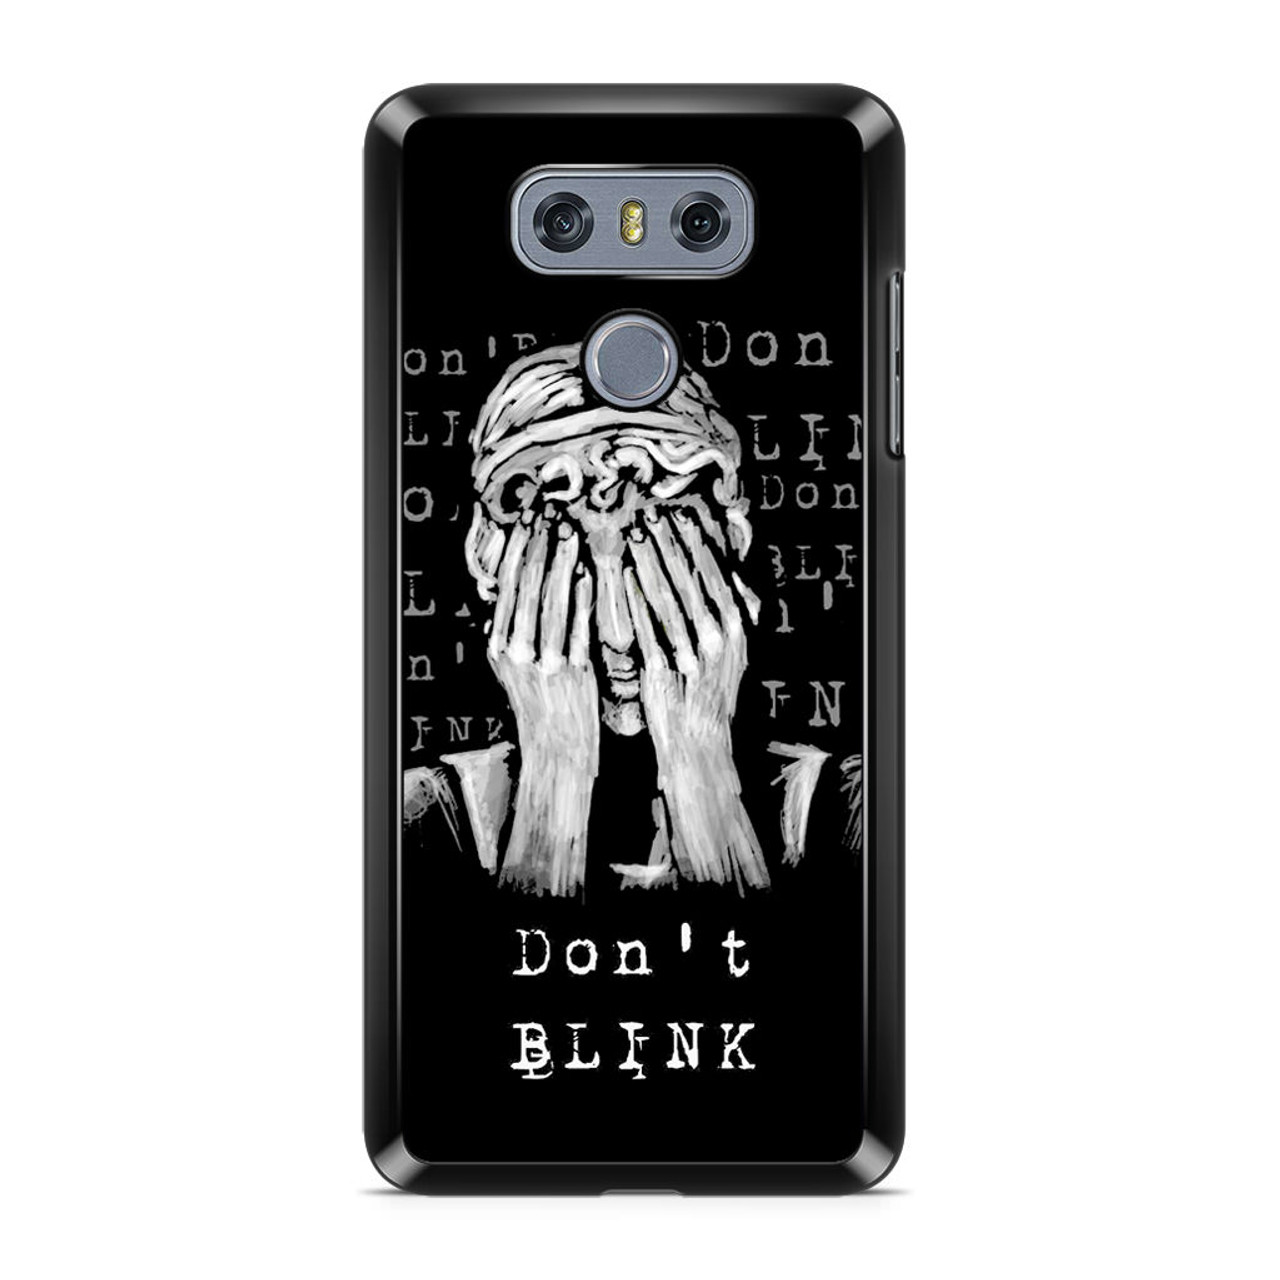 Don t Blink LG G6 Case - CASESHUNTER 9e3089913